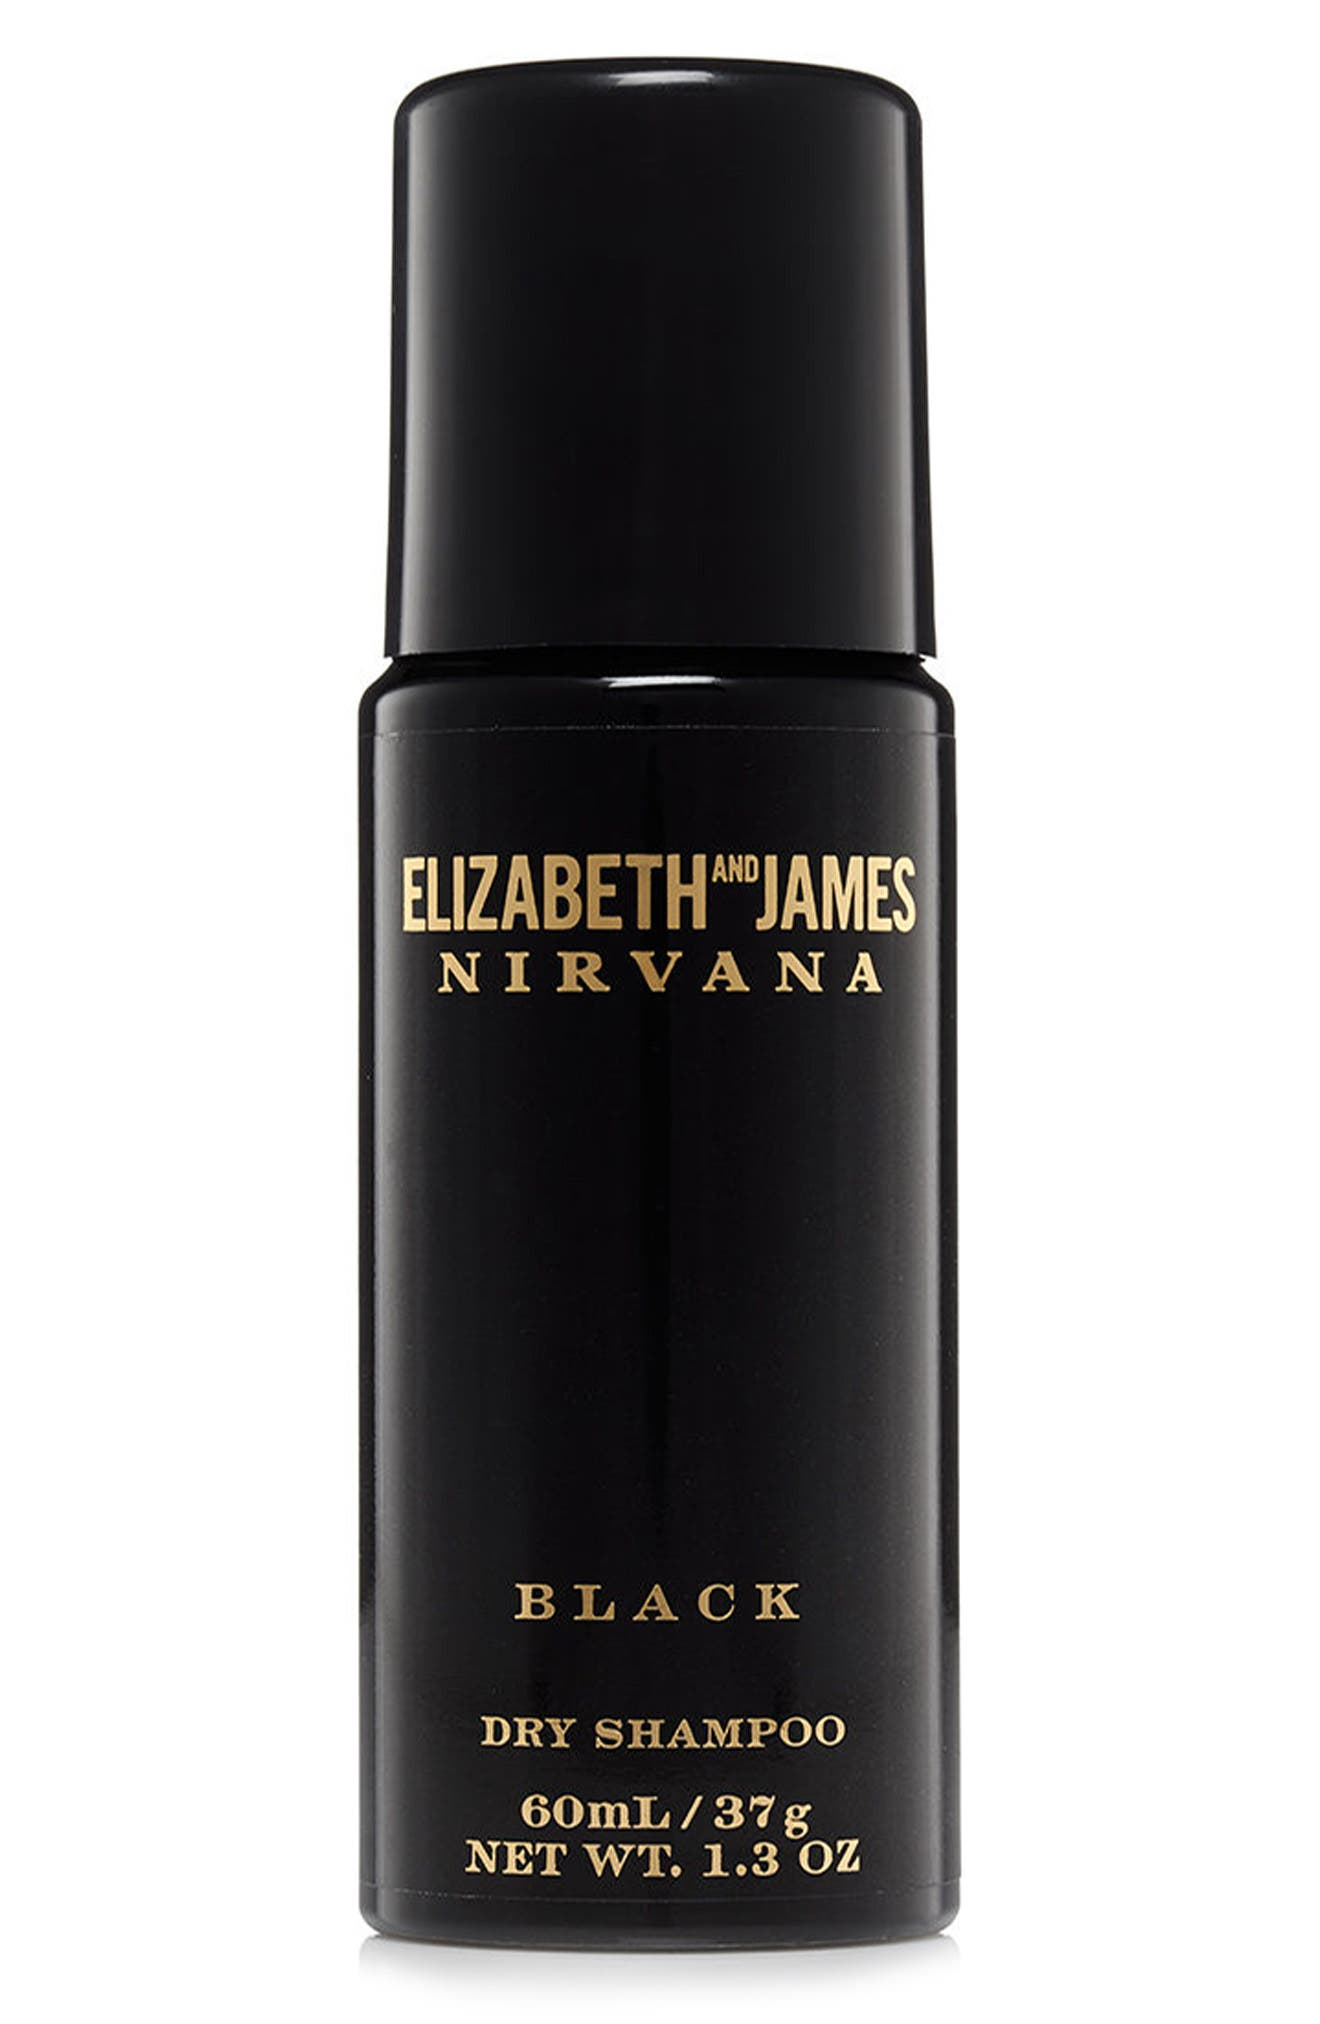 Elizabeth and James Nirvana Black Dry Shampoo Mini